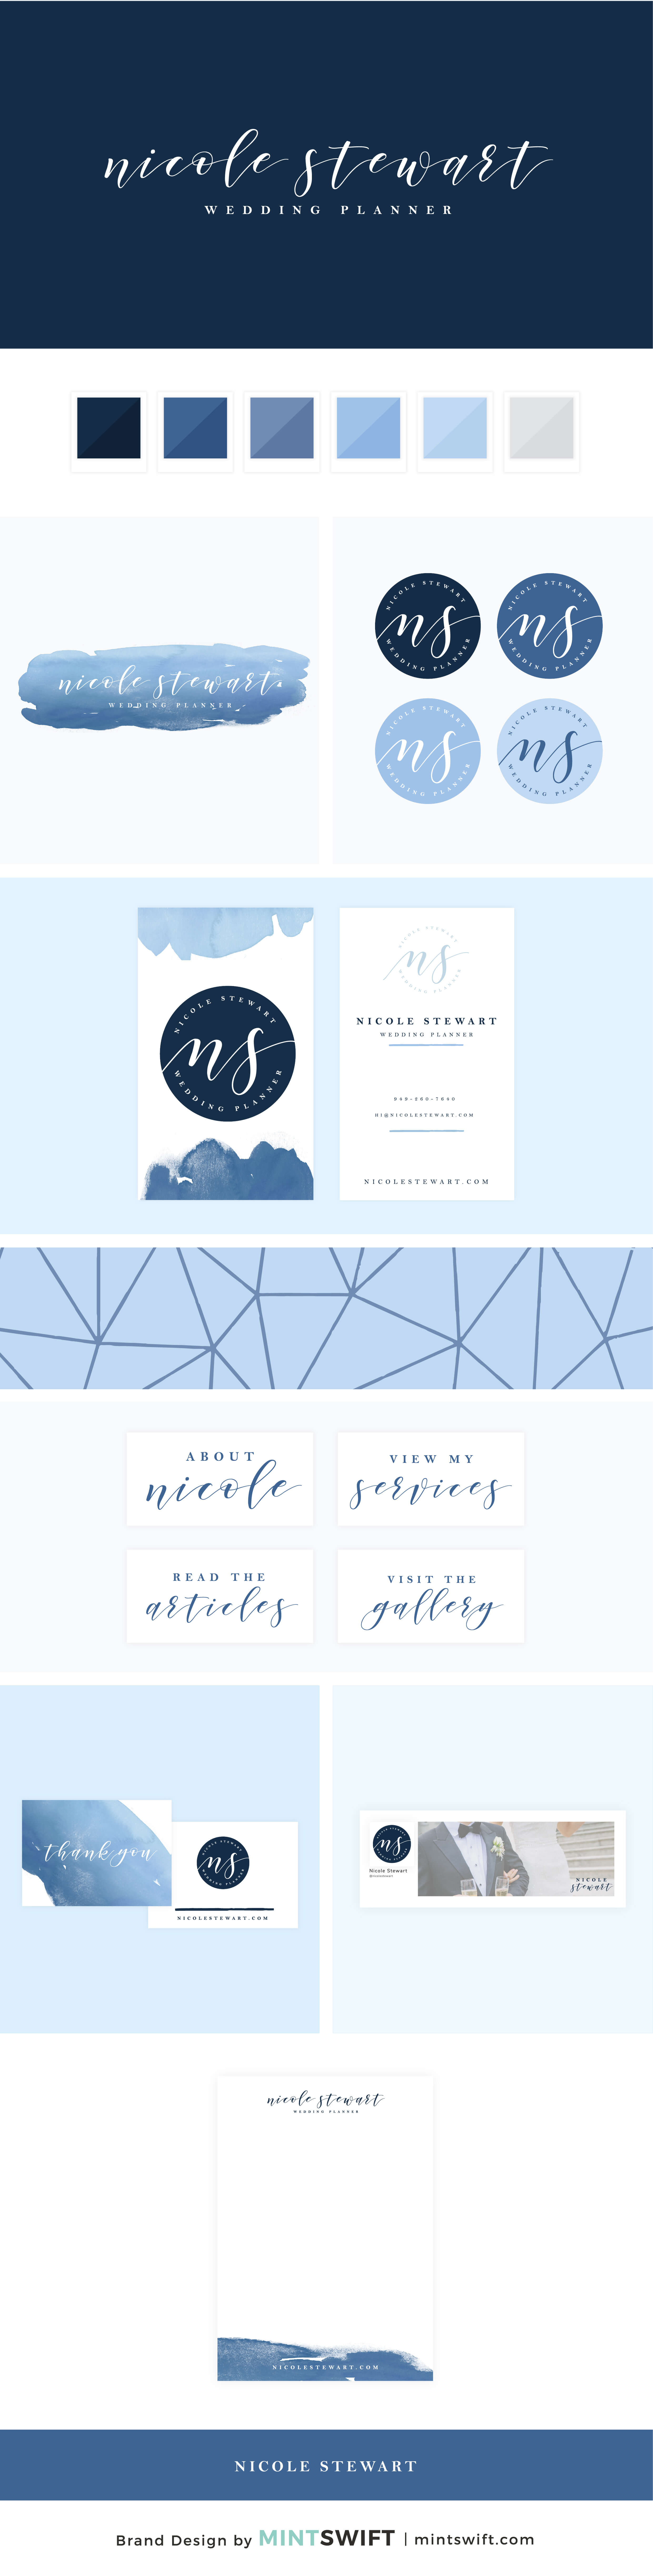 Nicole Stewart - Brand Design Package - MintSwift